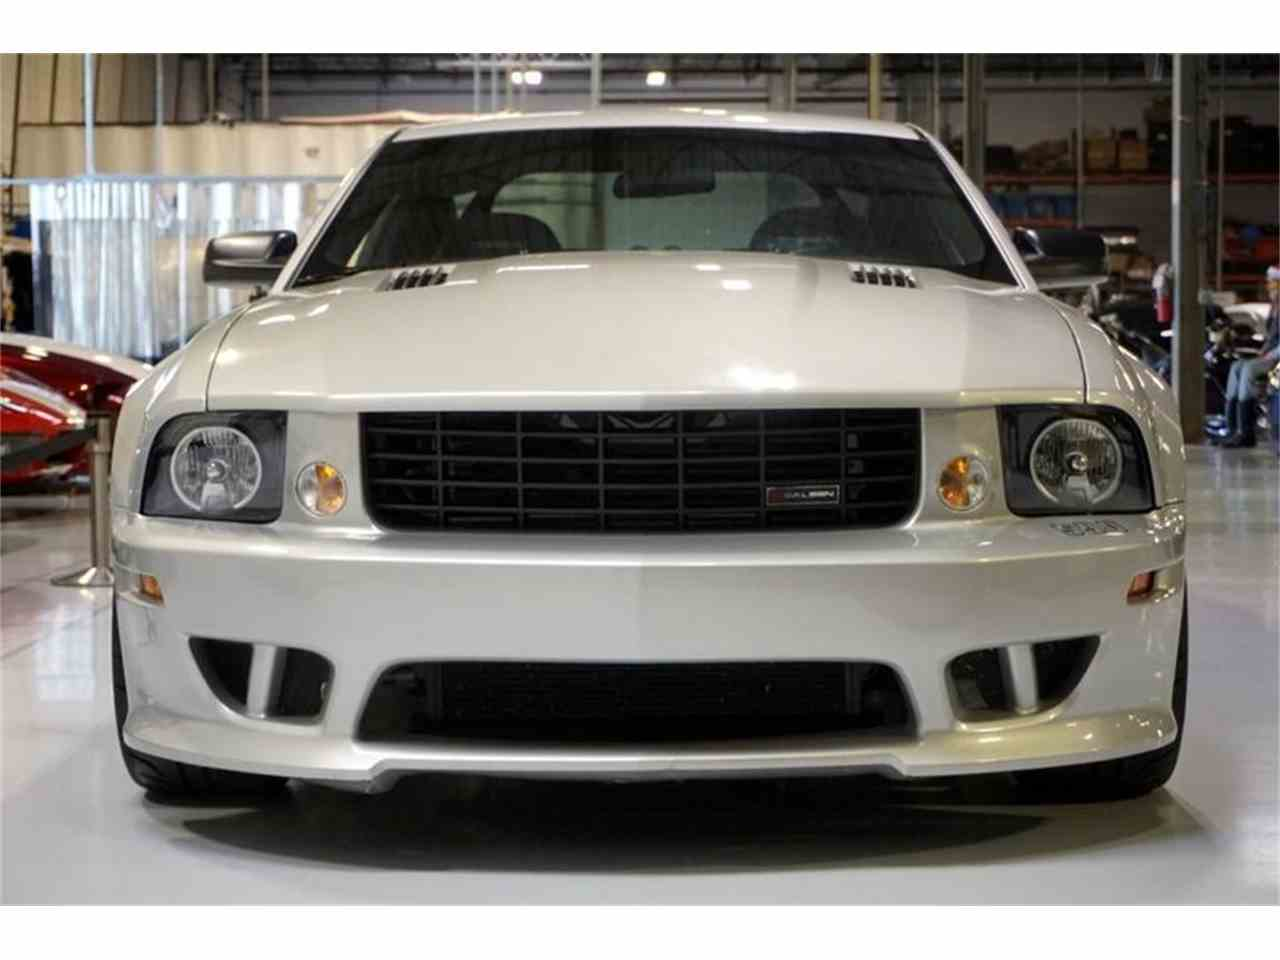 Large Picture of 2006 Ford Mustang located in Solon Ohio - $34,990.00 - MC5Z